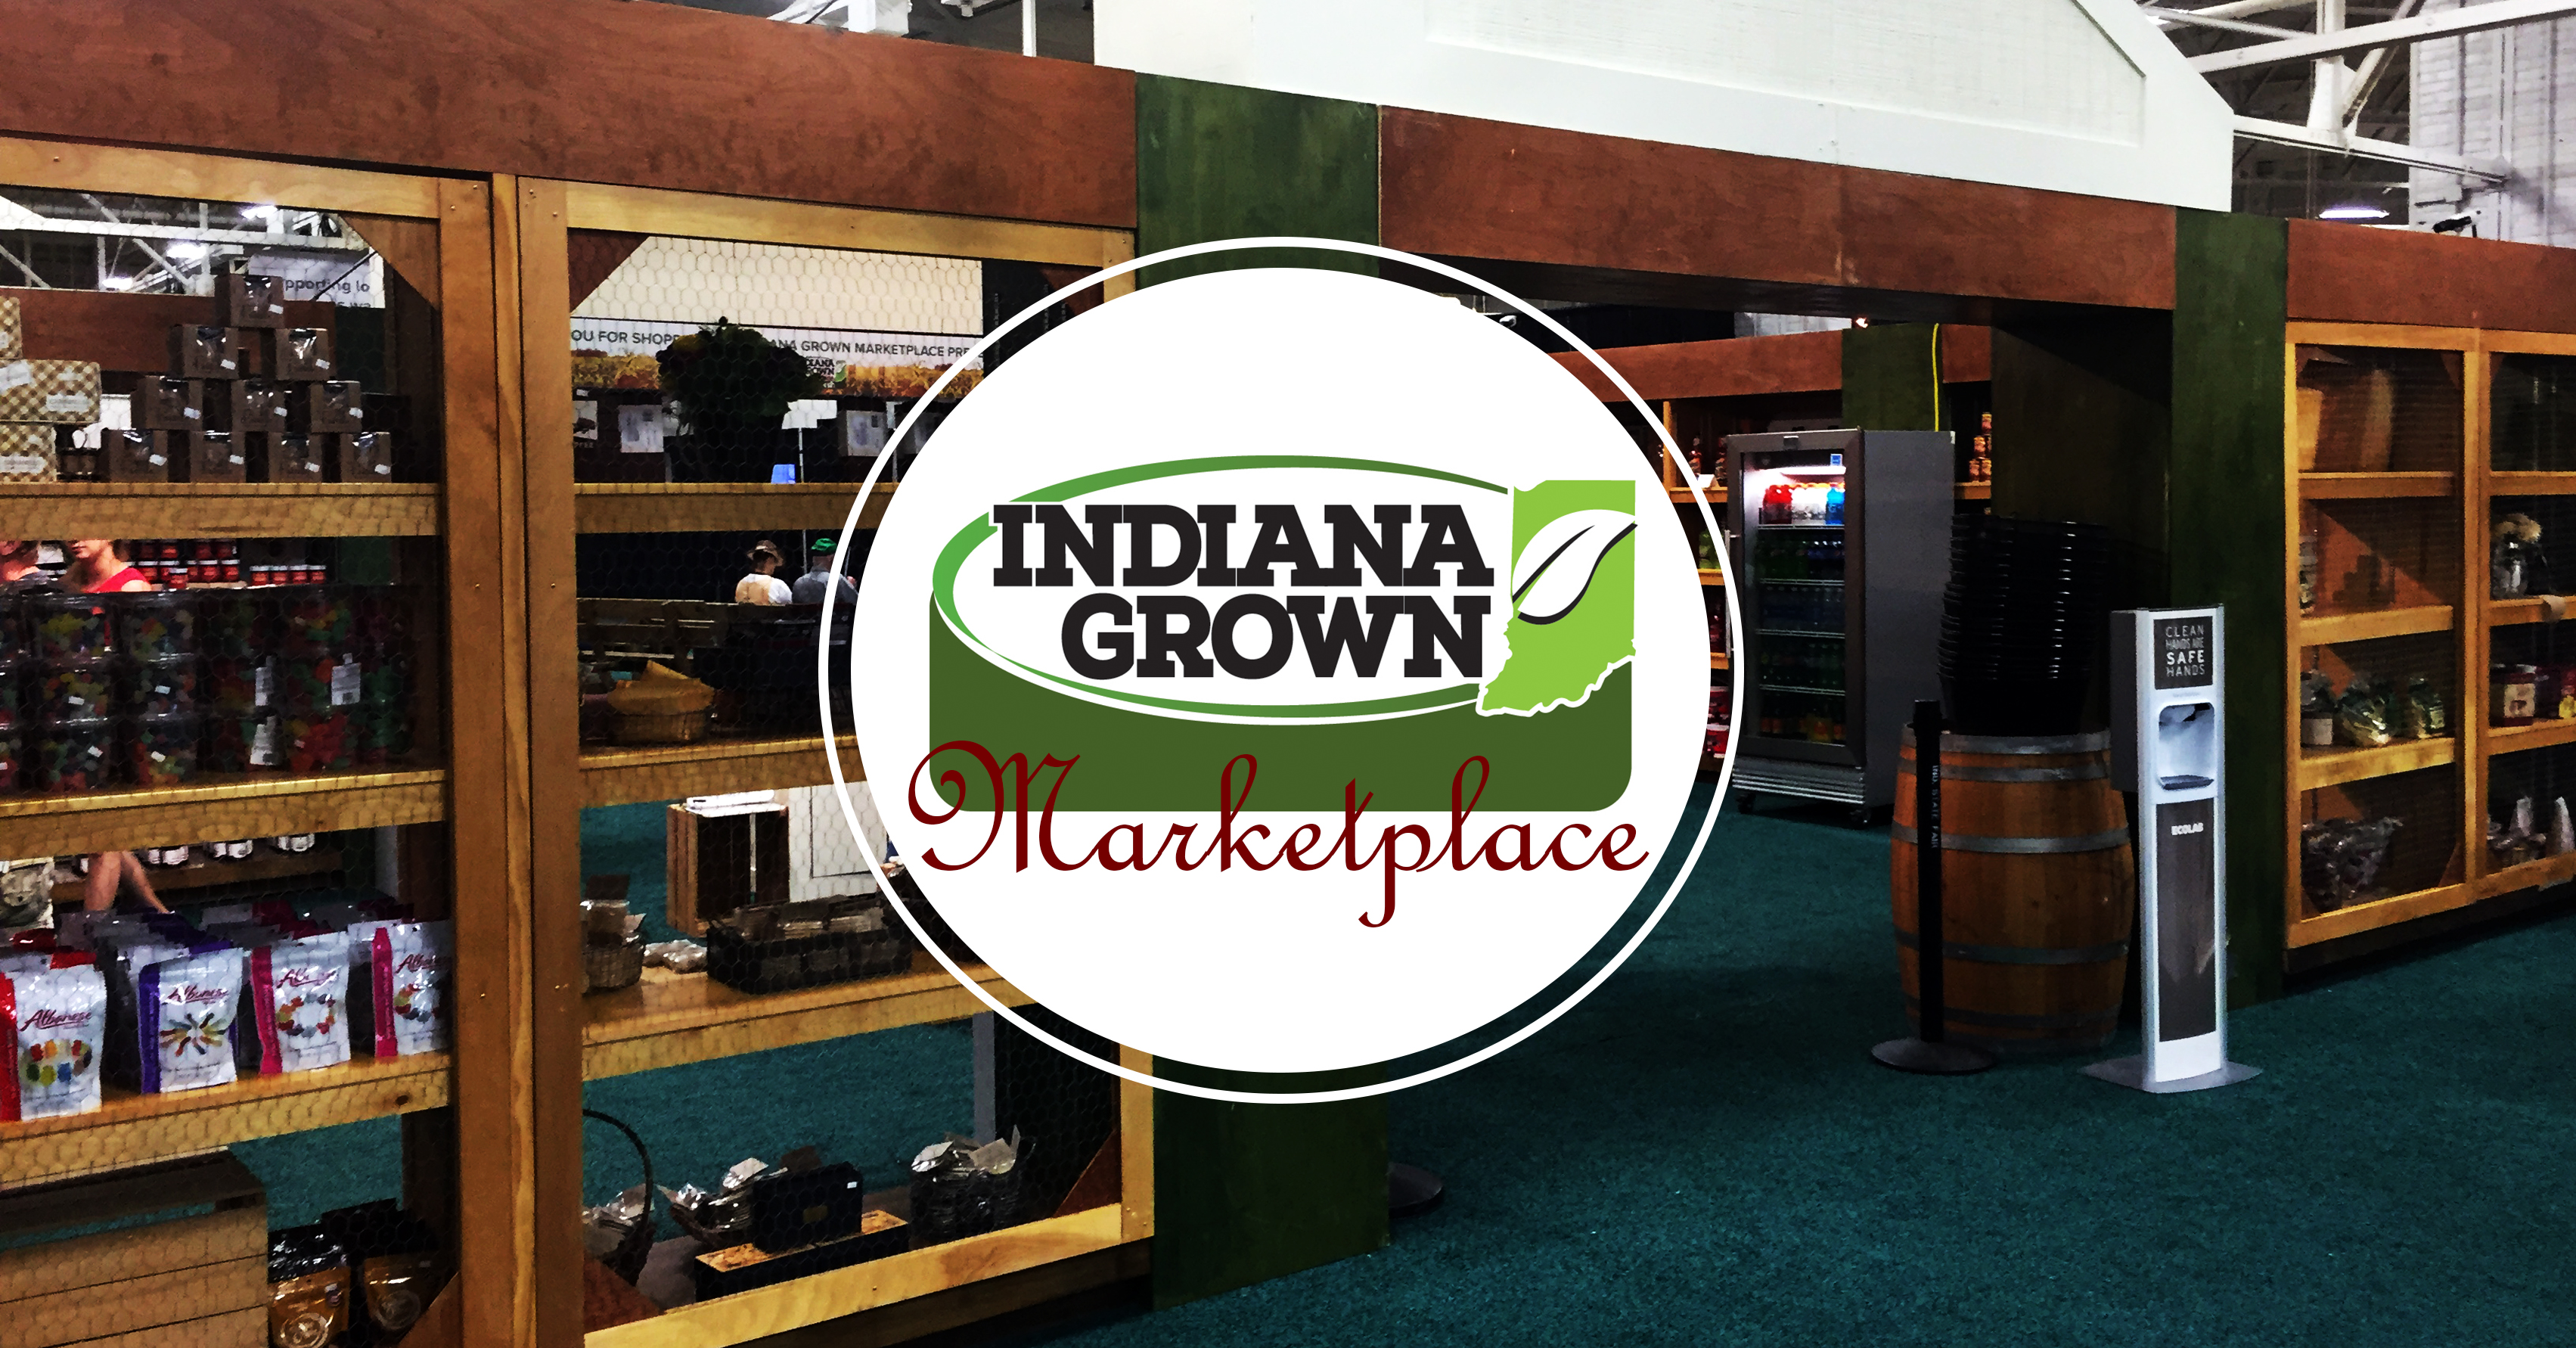 Indiana Grown Marketplace will offer more than 300 local products